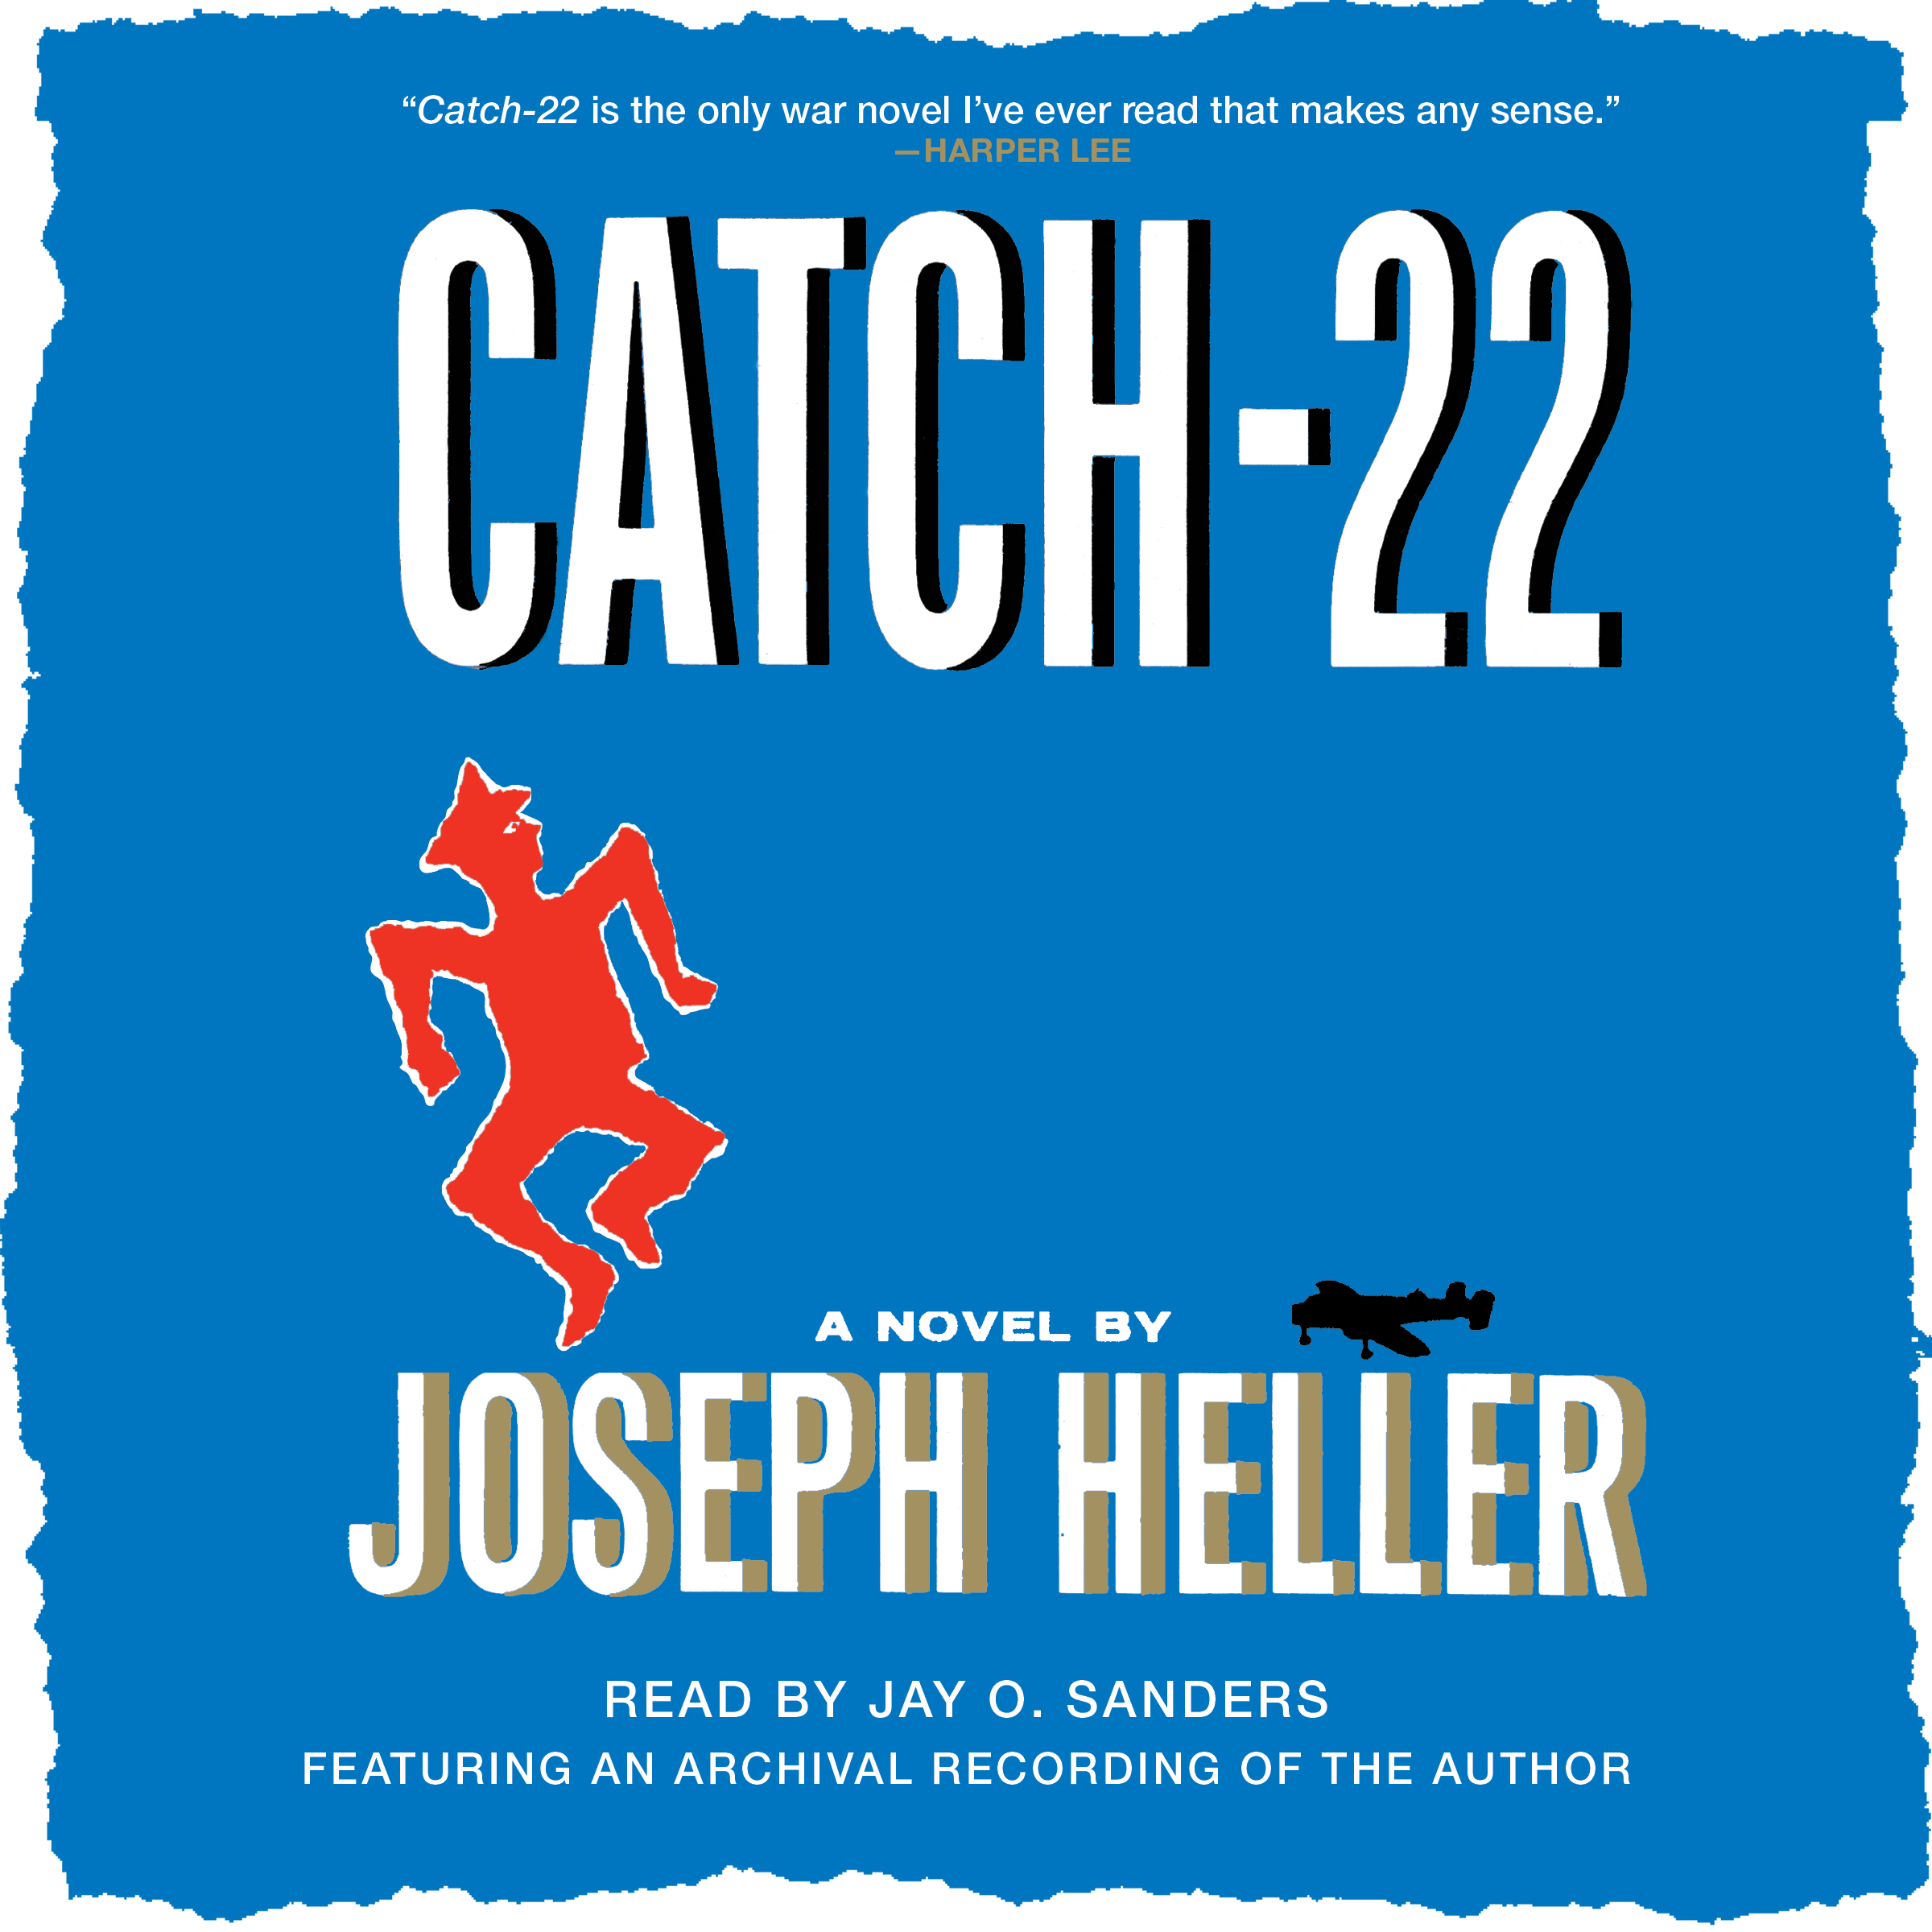 critical essays on joseph heller Catch-22 (joseph heller) at booksamillioncom this fiftieth-anniversary edition commemorates joseph heller's masterpiece with a new introduction critical essays and reviews by norman.